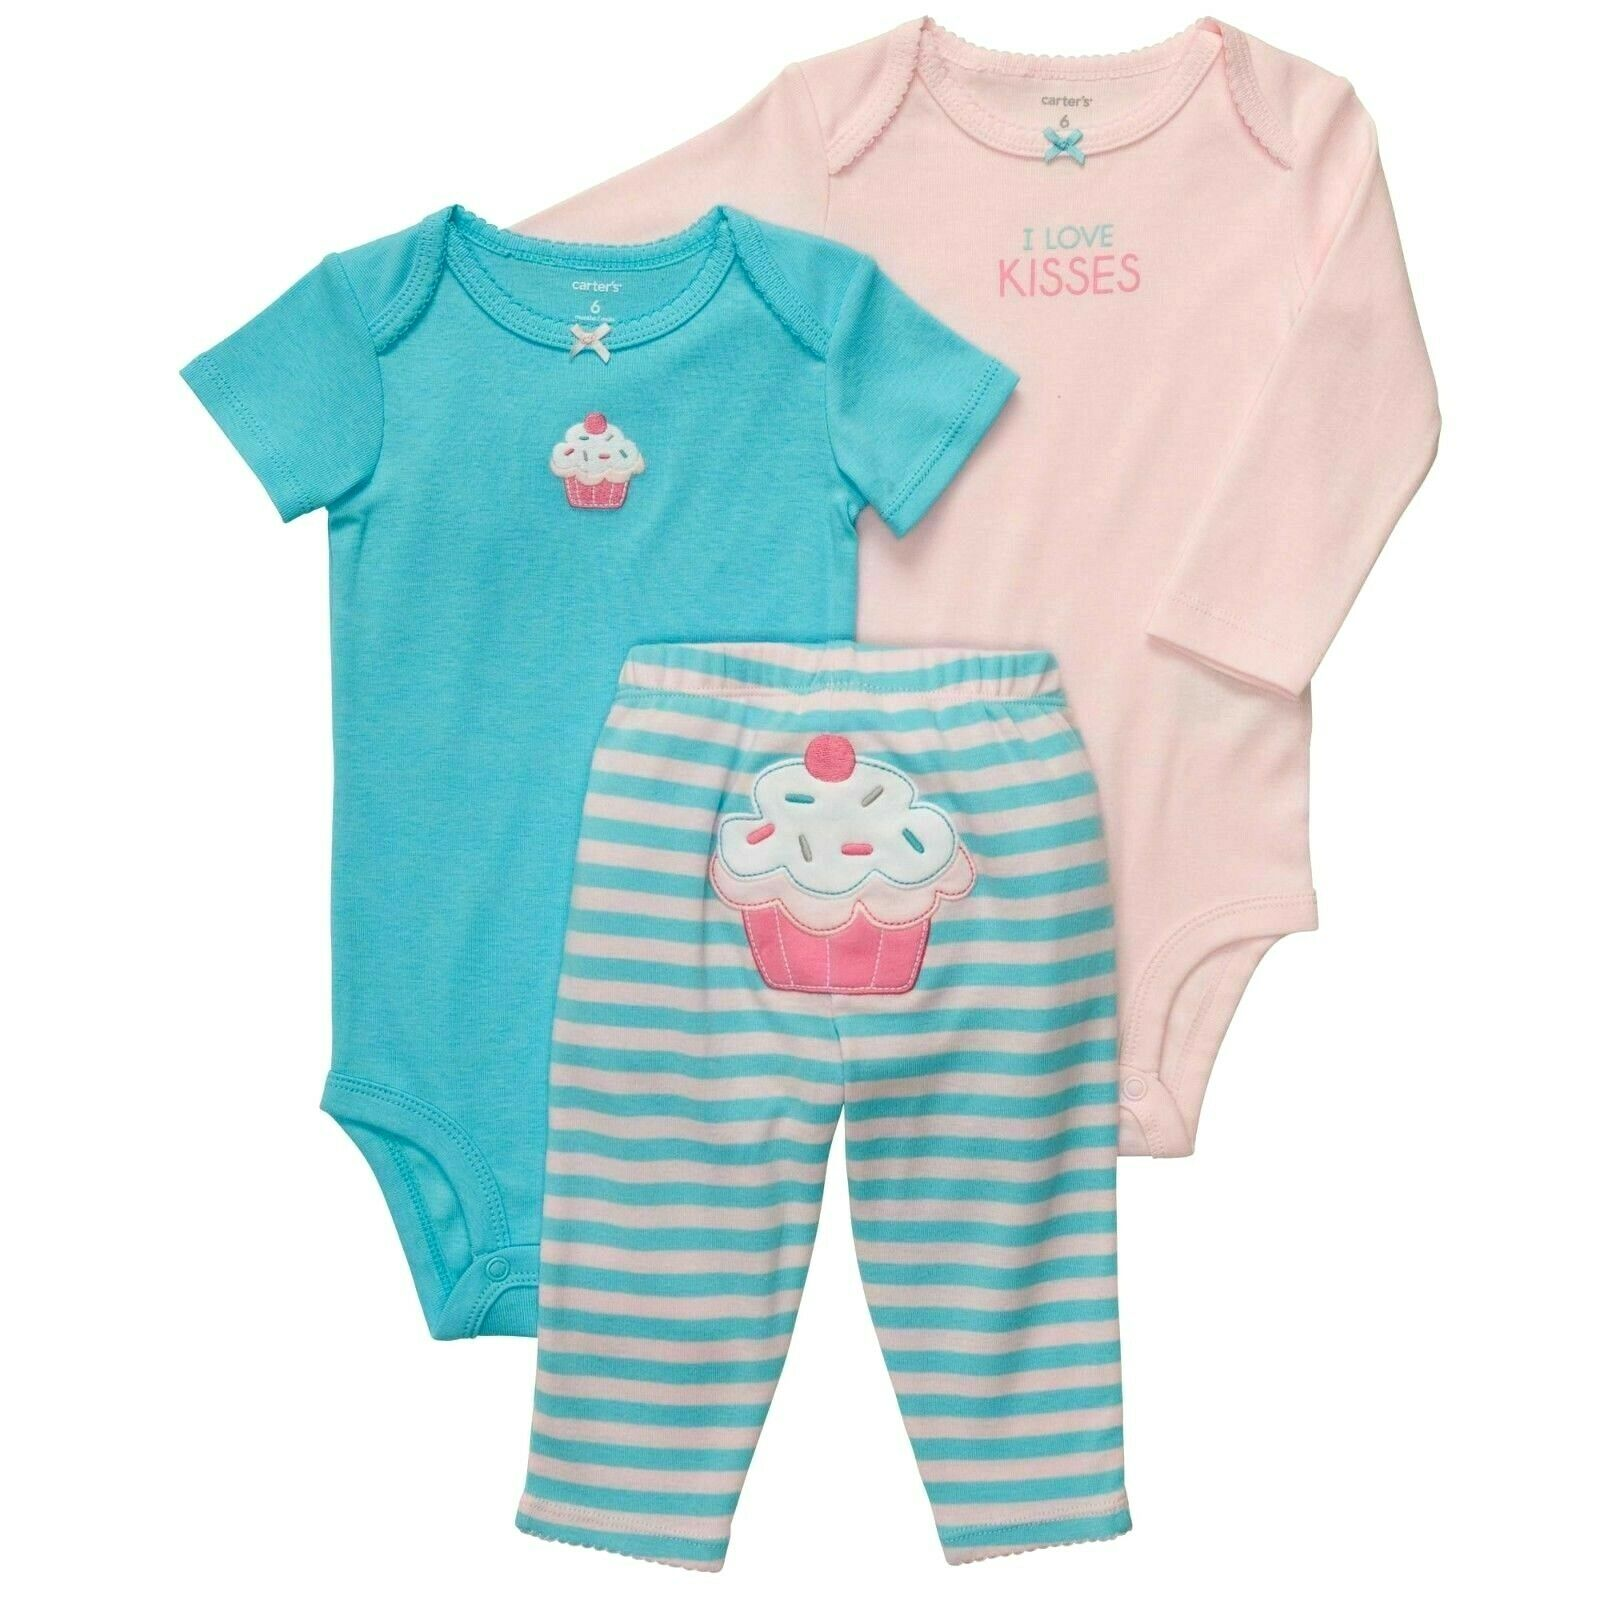 CARTER'S BABY GIRL 3PC LOVE KISSES CUPCAKE BODYSUITS PANT SET 6M OUTFIT CLOTHES